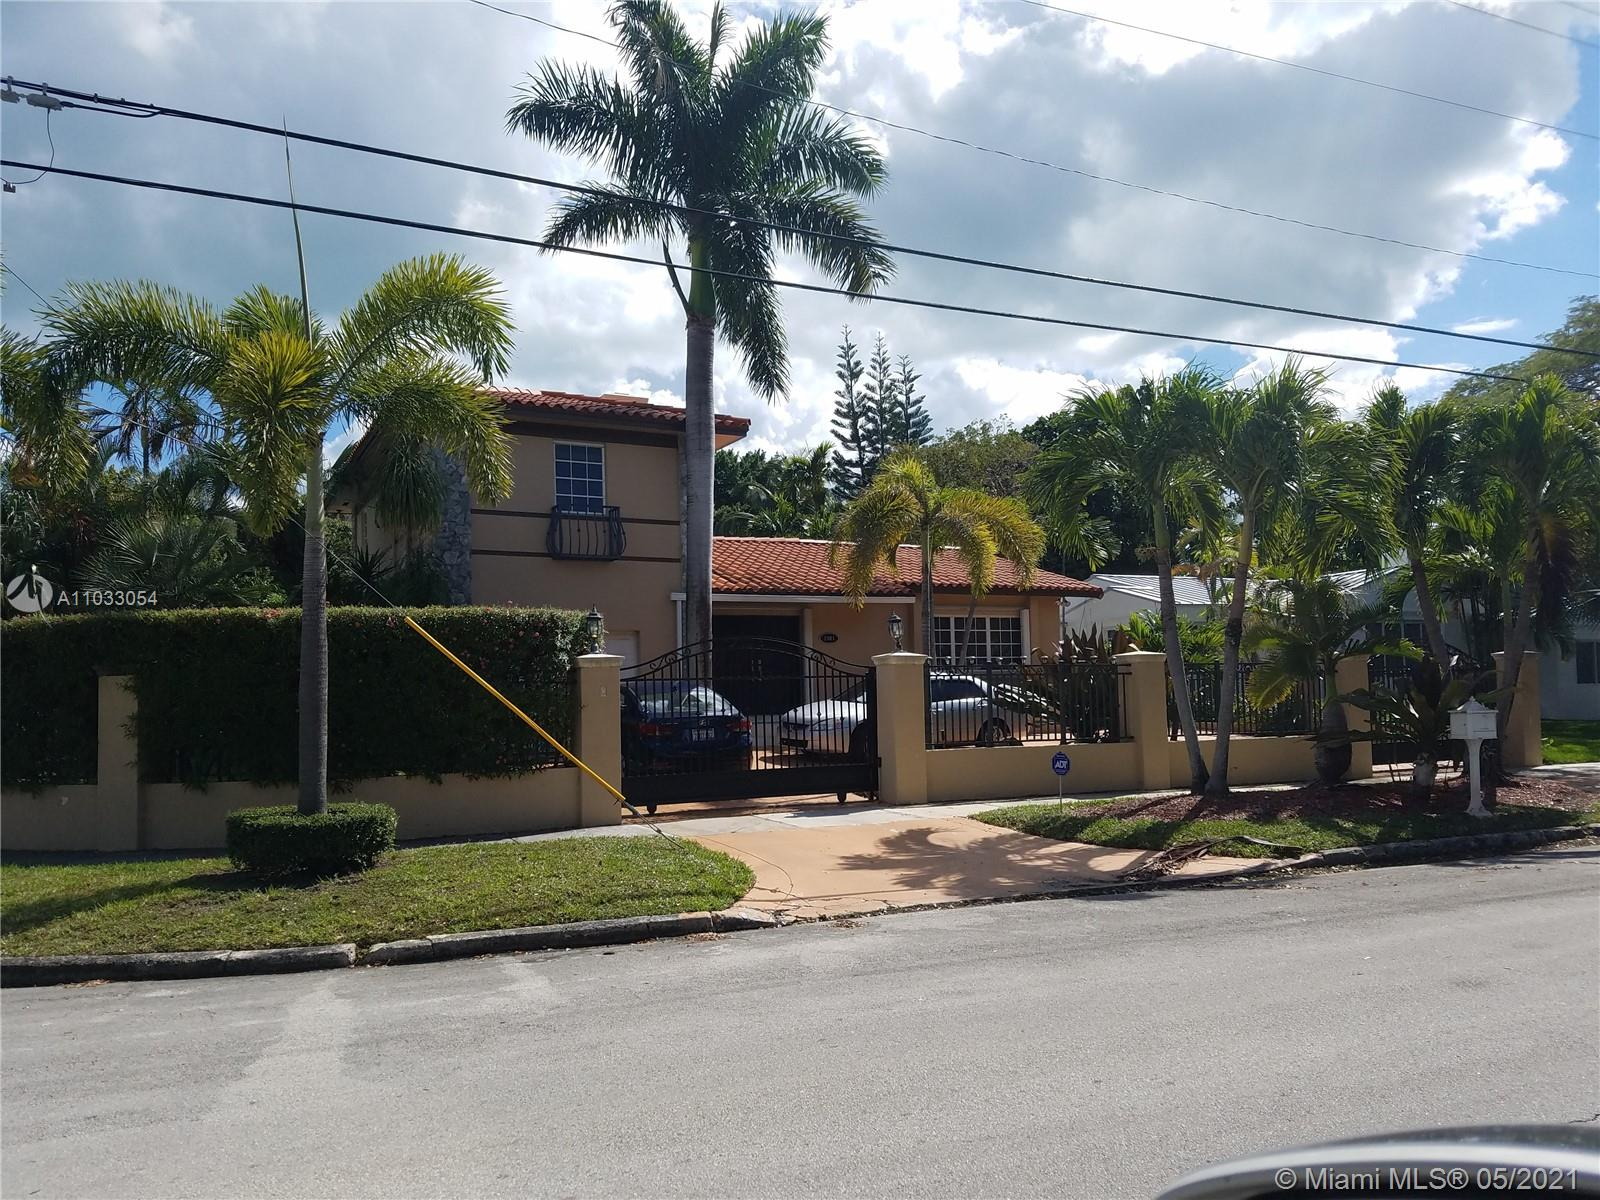 3/3 plus den. Pool home in exclusive Roads area.